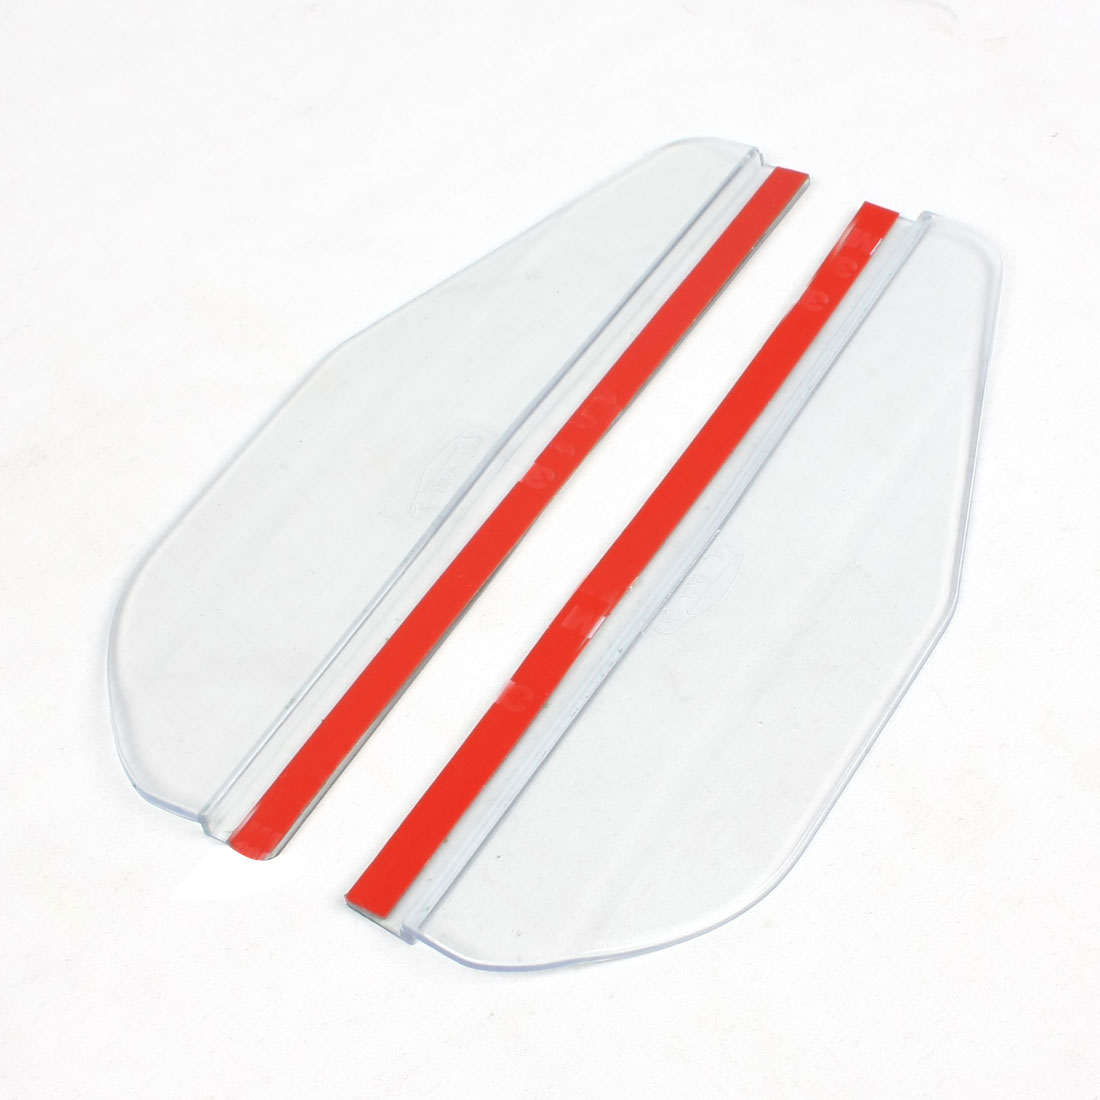 2 Pcs Clear Soft Plastic Car Rearview Mirror Shielding Rain Board